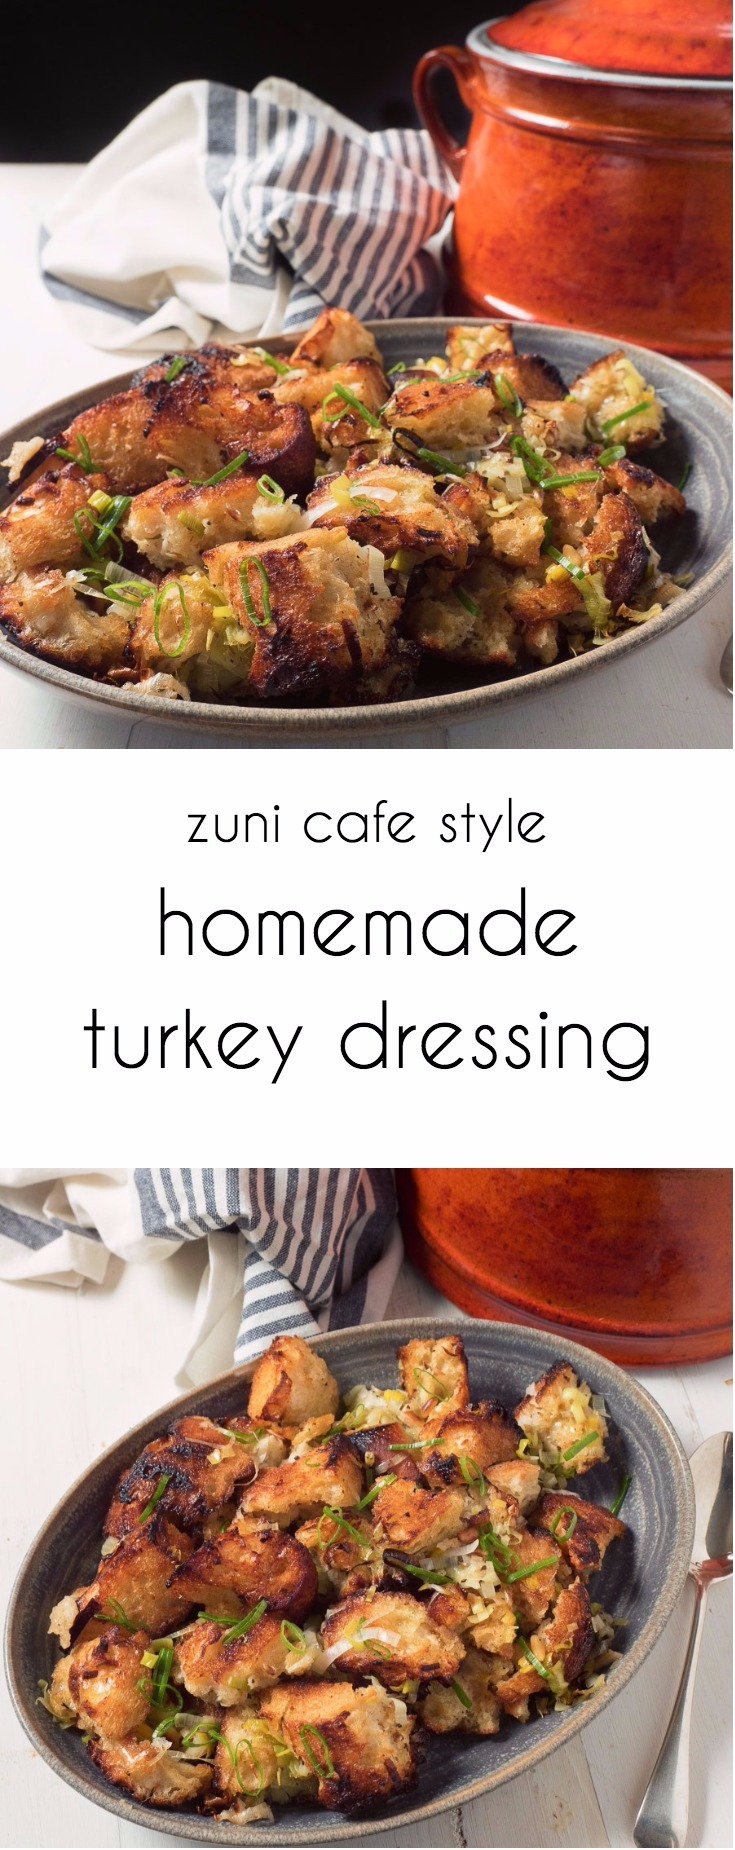 Homemade turkey dressing done right. You won't miss stuffing ever again.